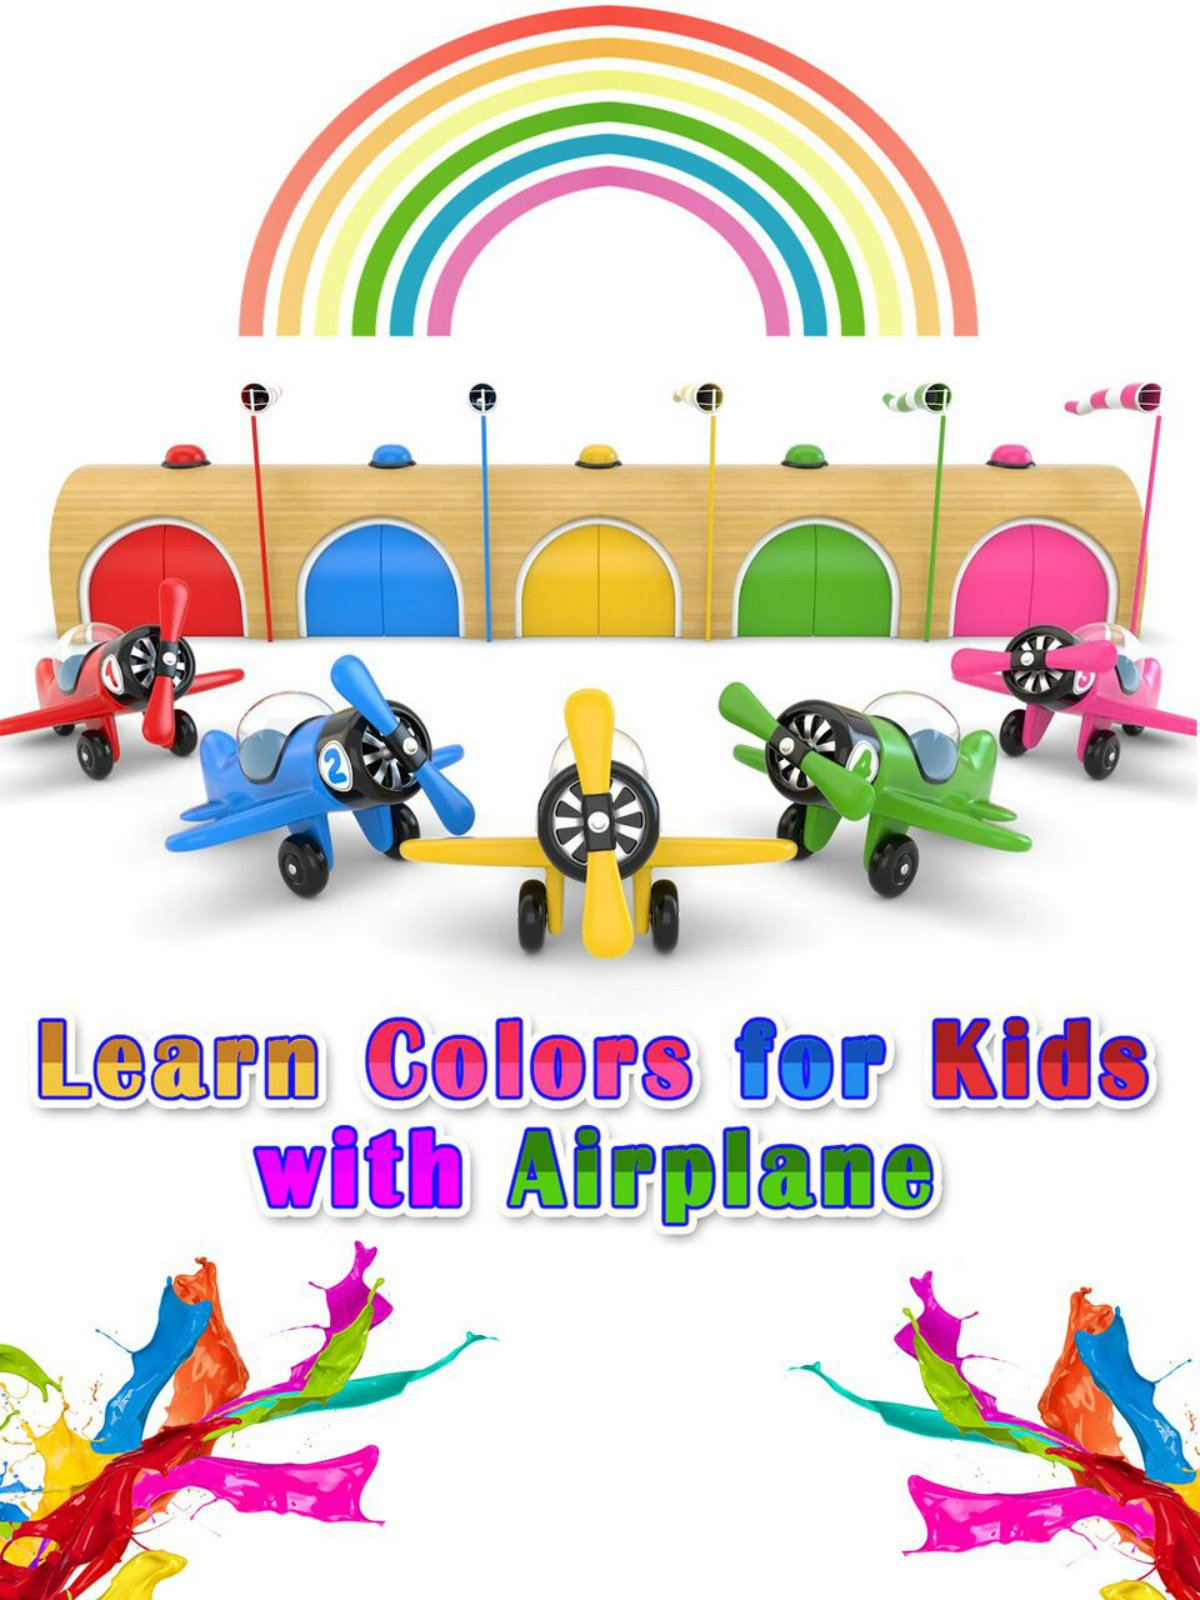 Learn Colors for Kids with Airplane